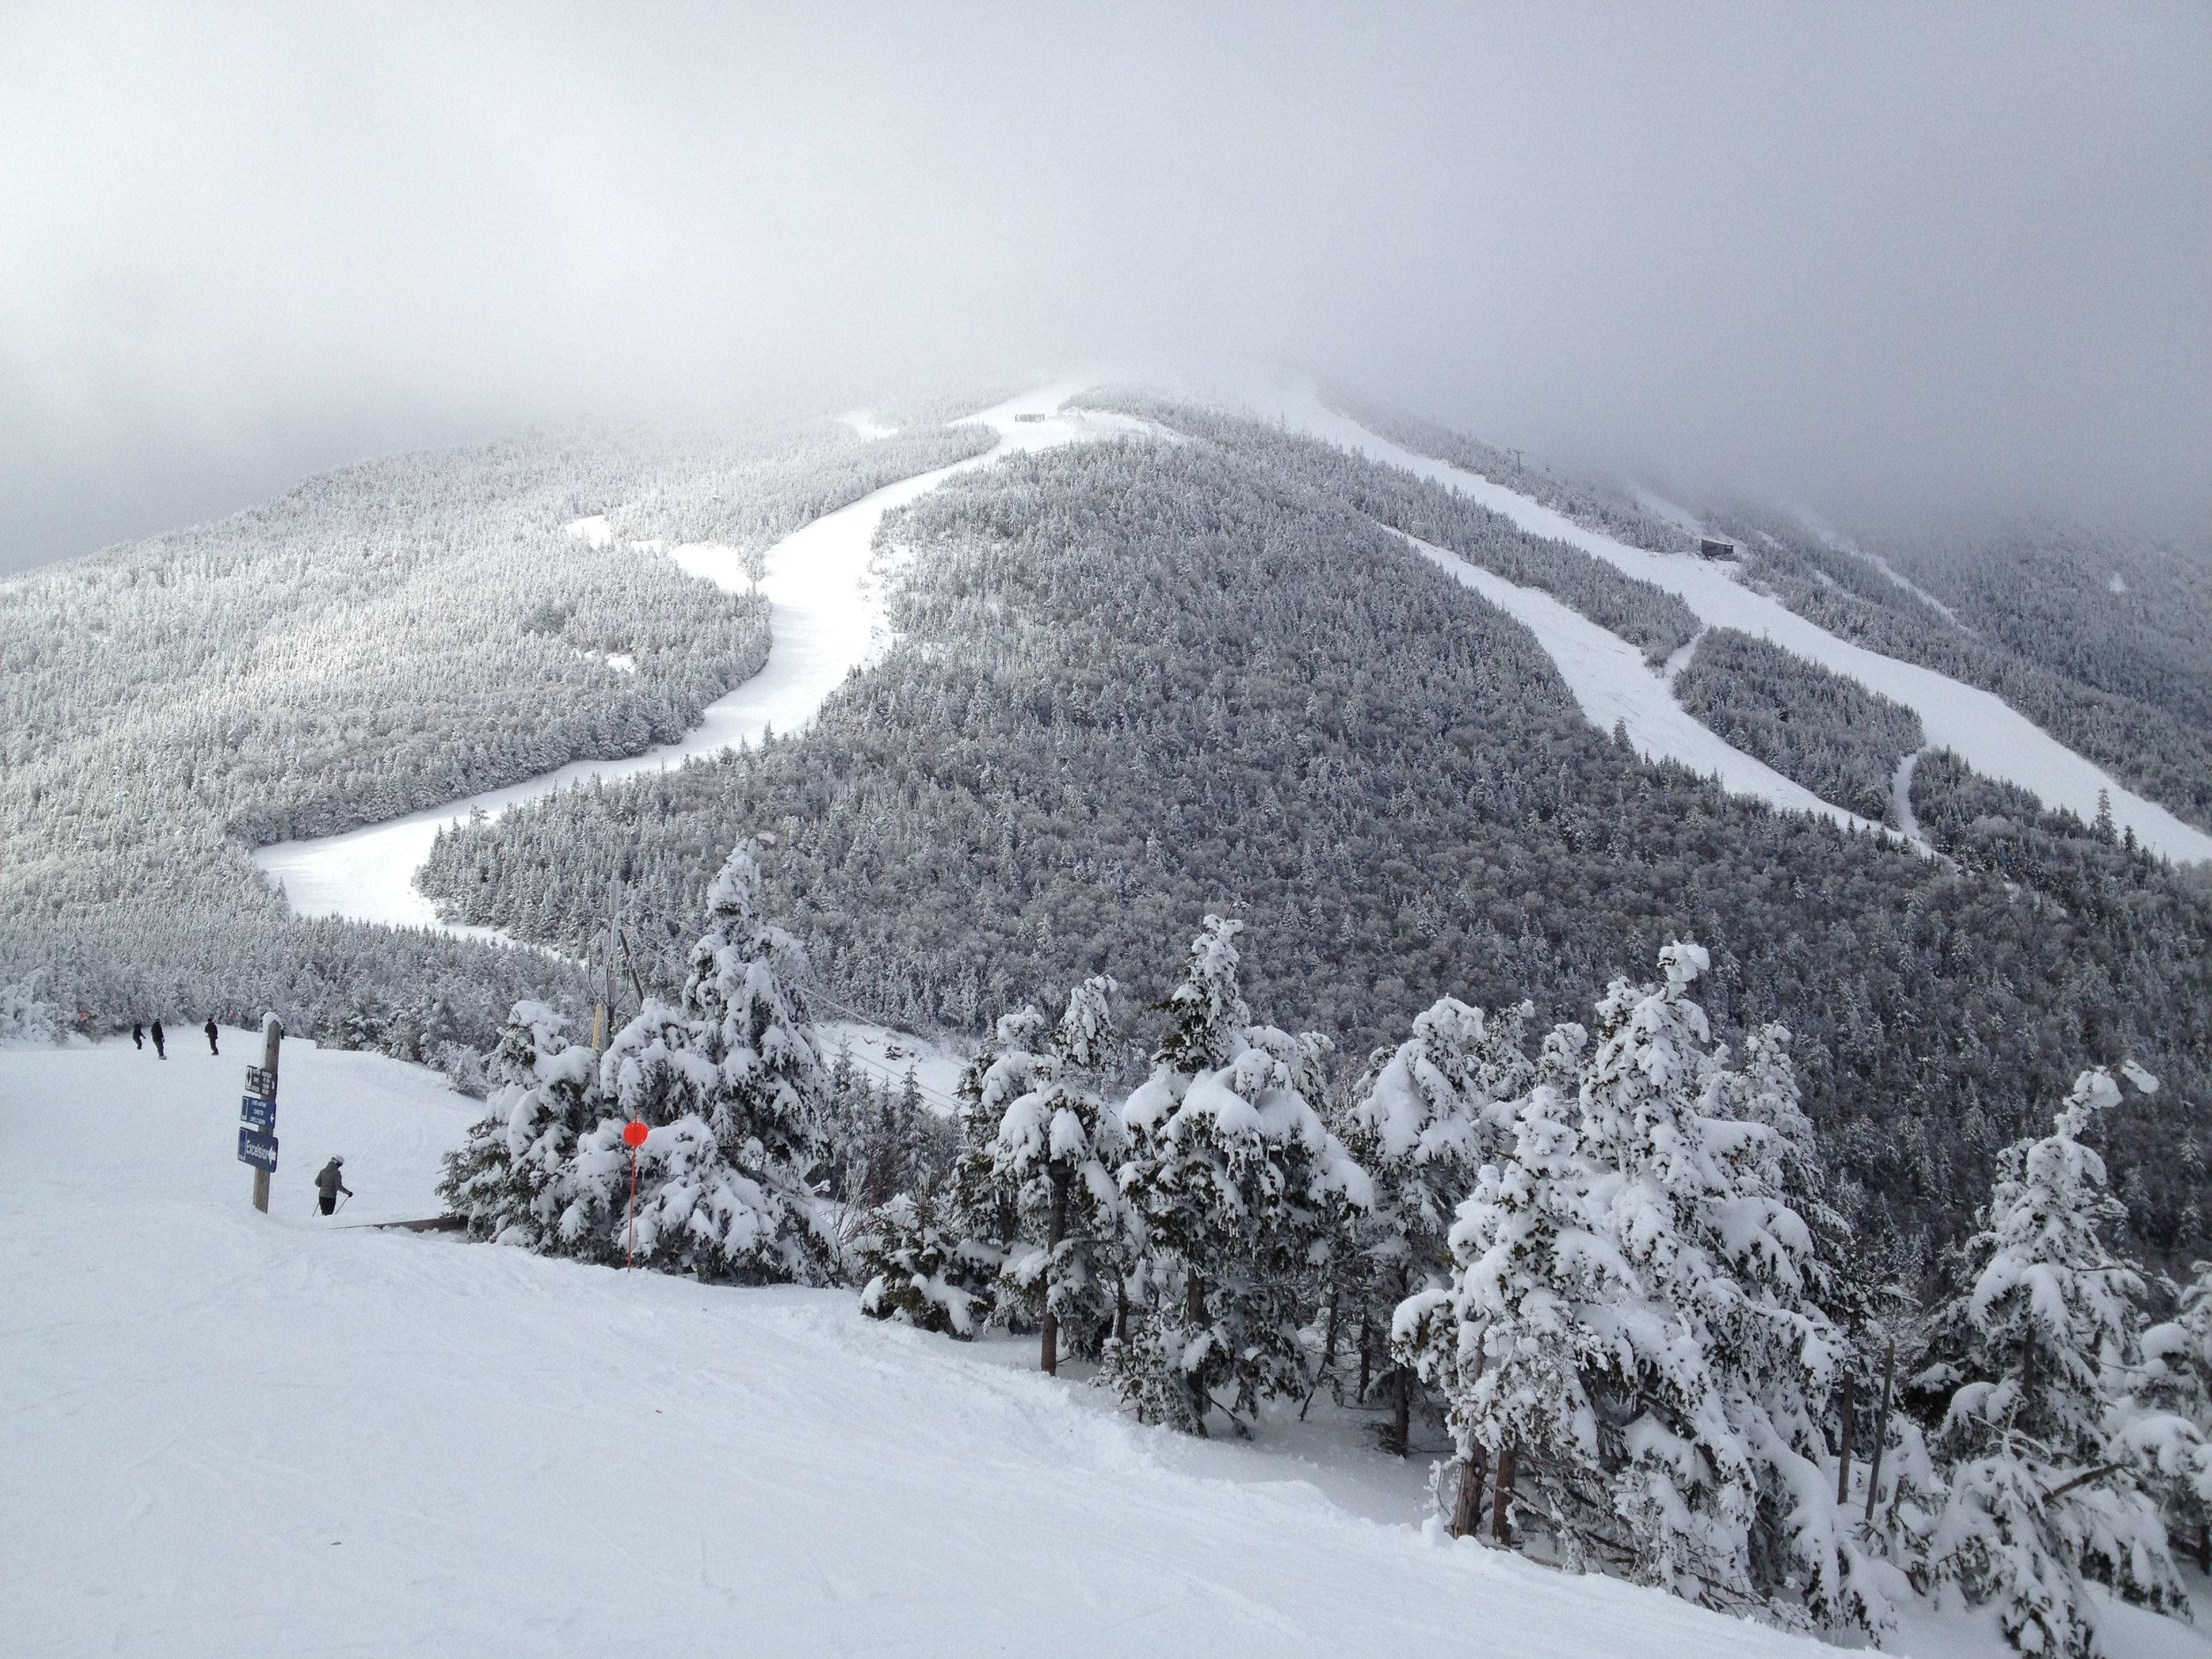 Definitely try downhill skiing at Whiteface mountain - one of the best mountain to ski at in New York!